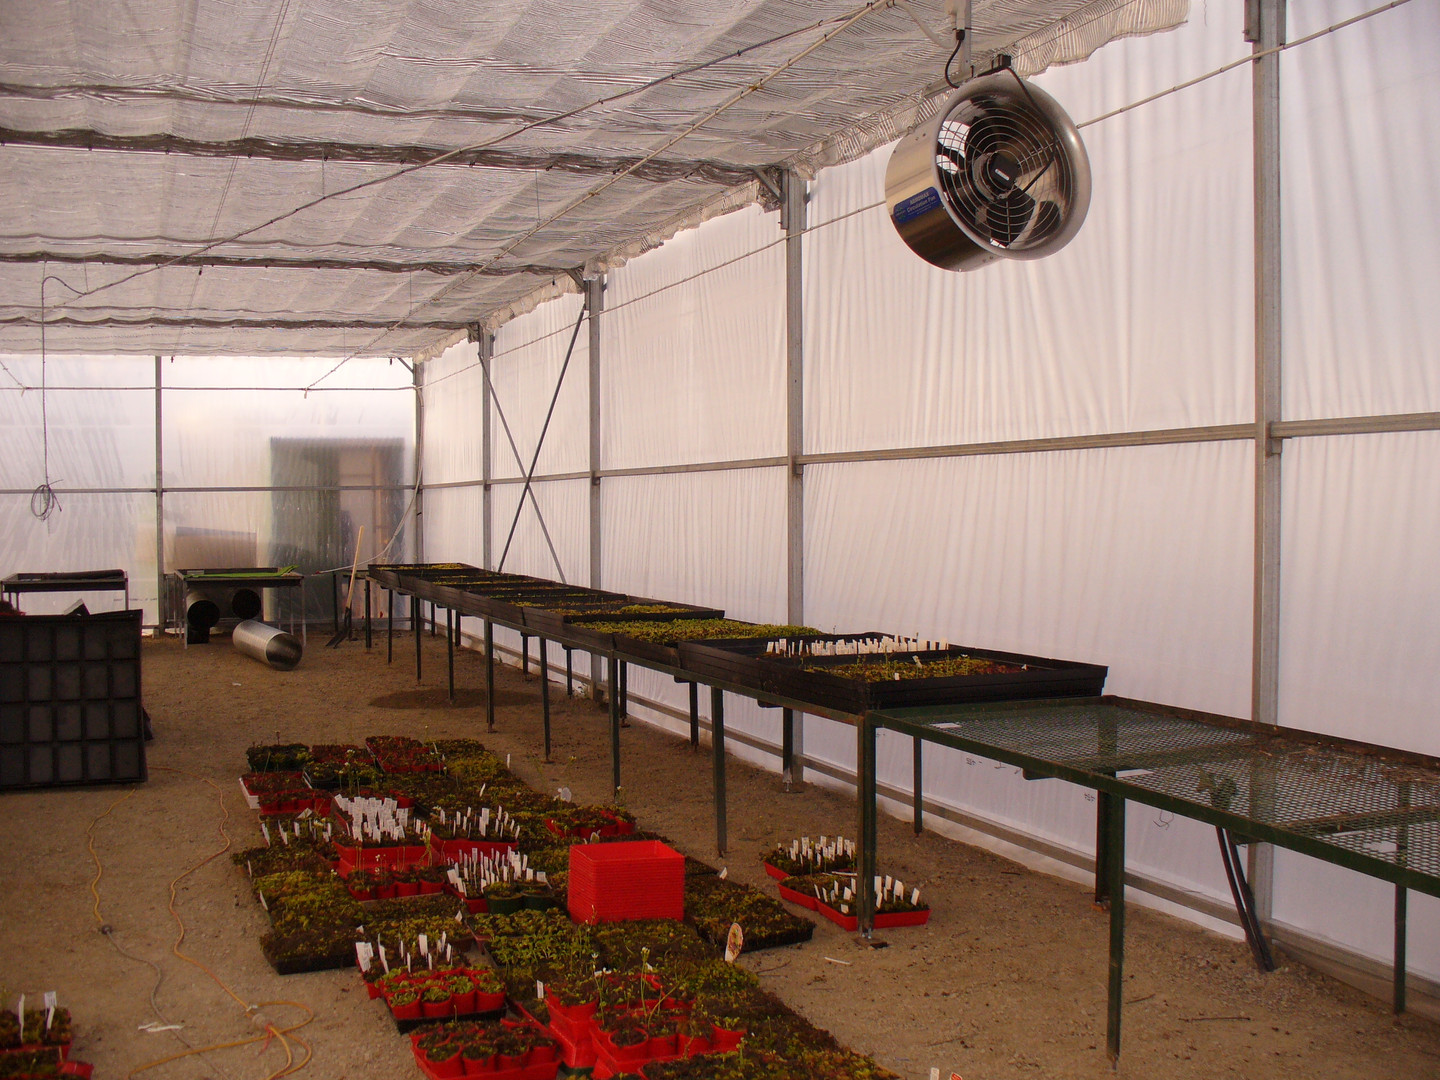 The first lot of benches and plants are brought into the venus fly trap growing room.  The screens, foggers and fans are in.